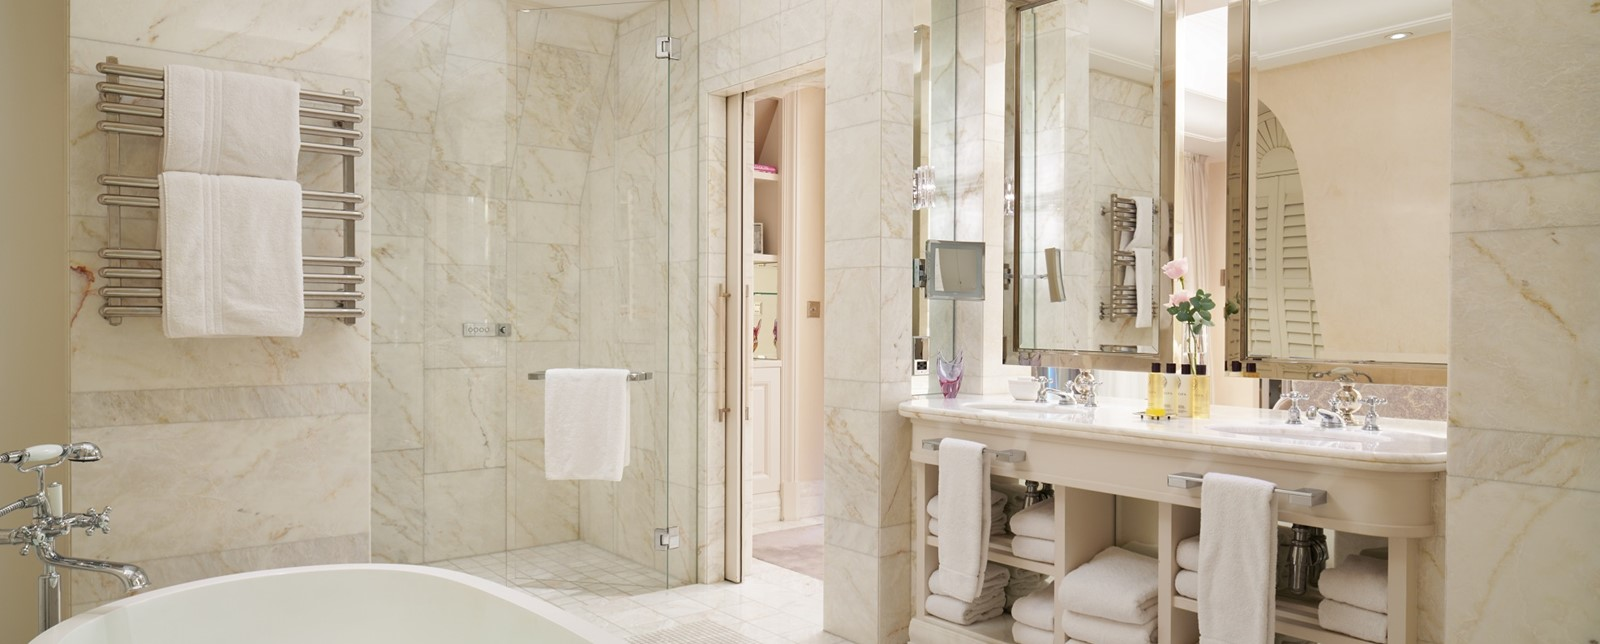 corinthia london hamilton bathroom